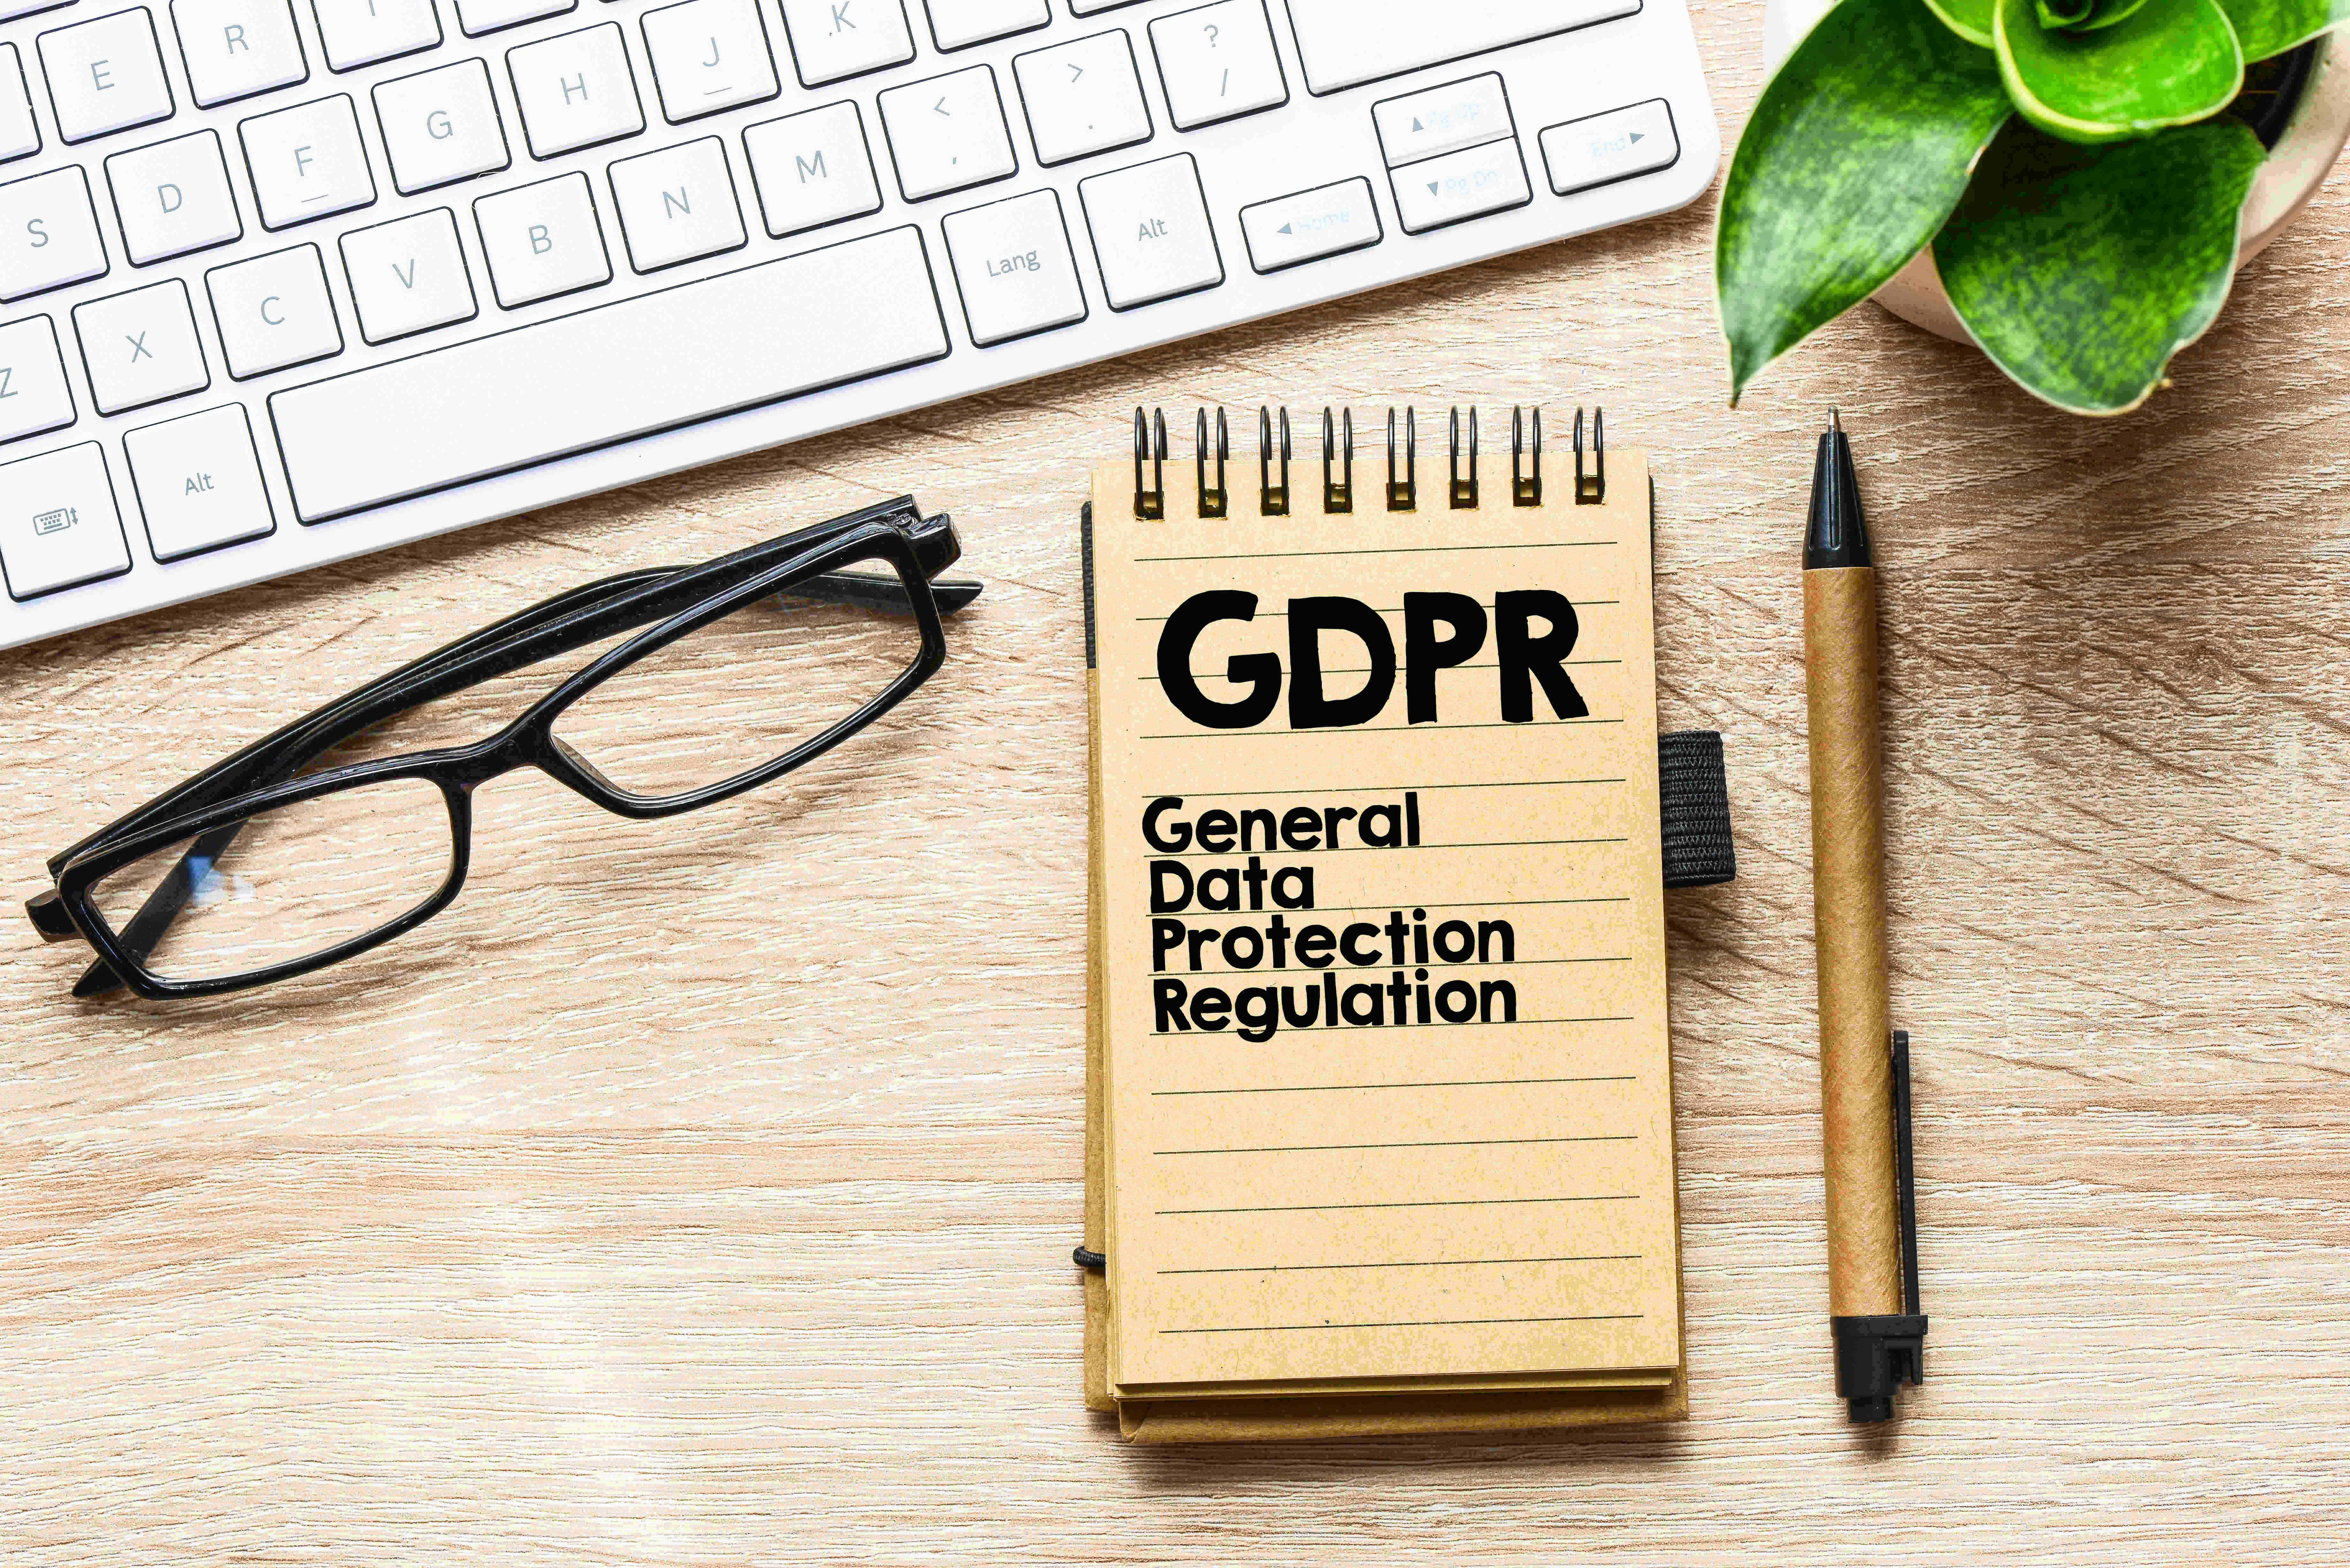 GDPR – What does this mean for me as a UAE business?